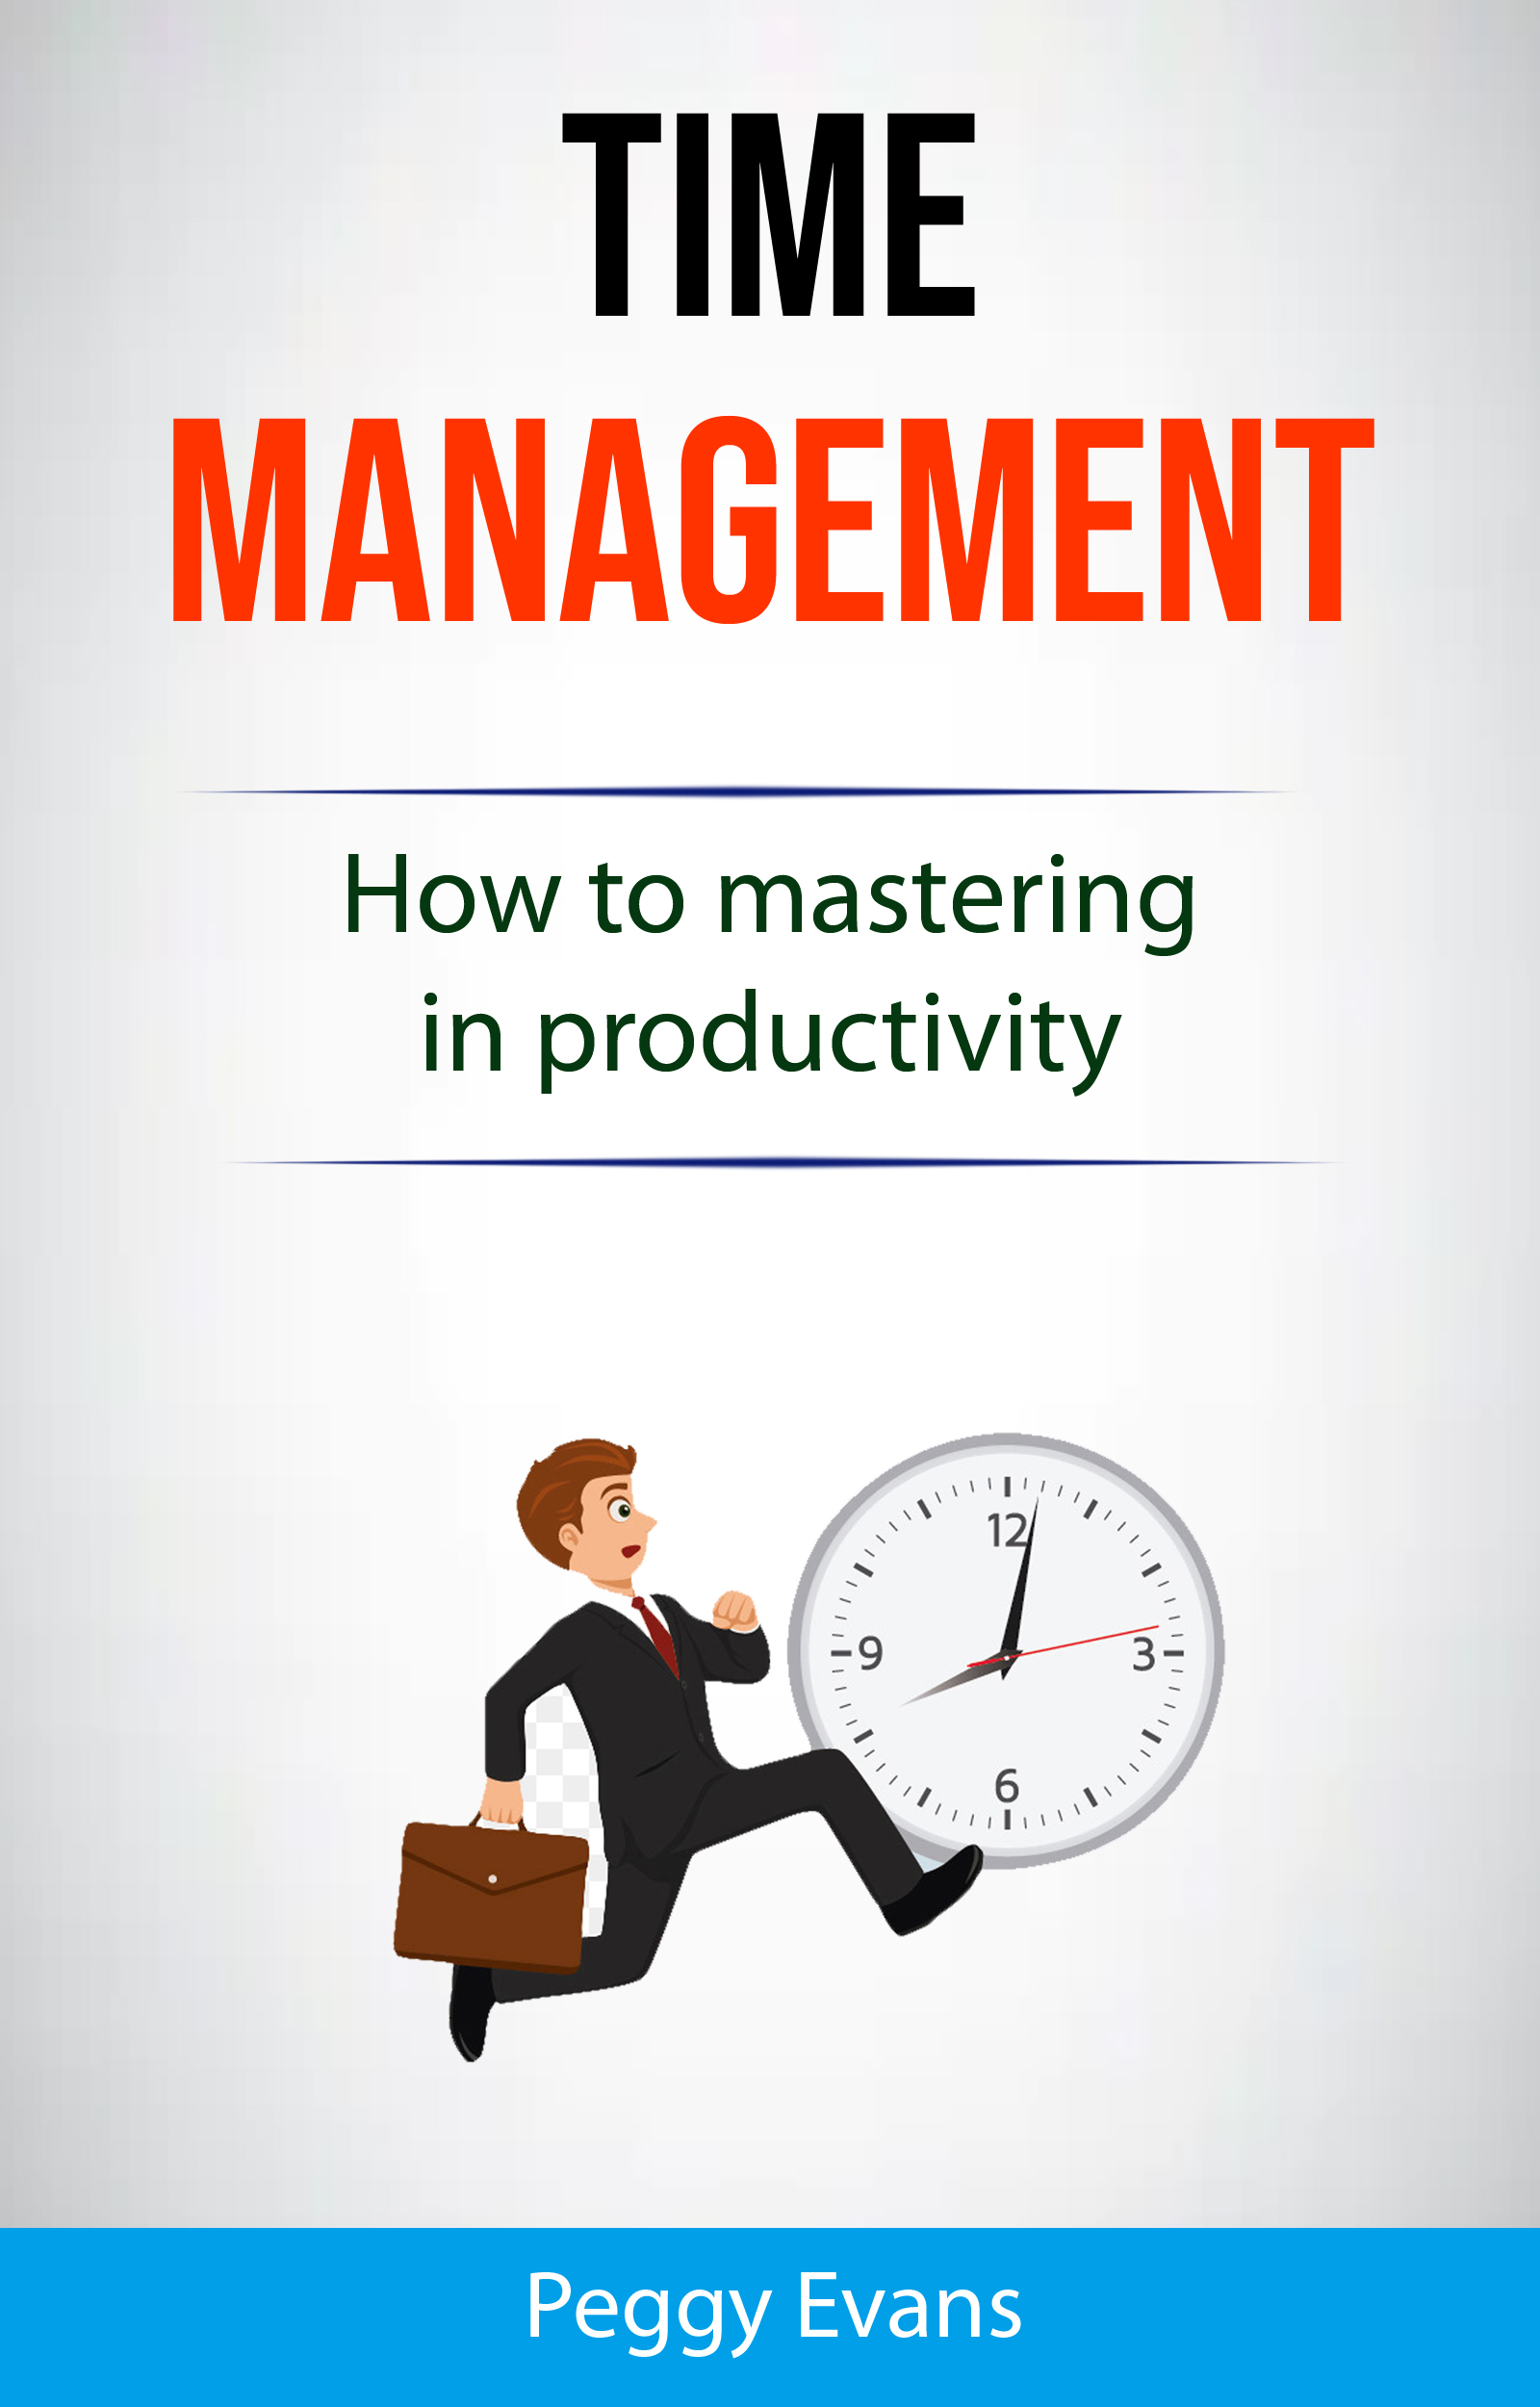 Time management: how to mastering in productivity